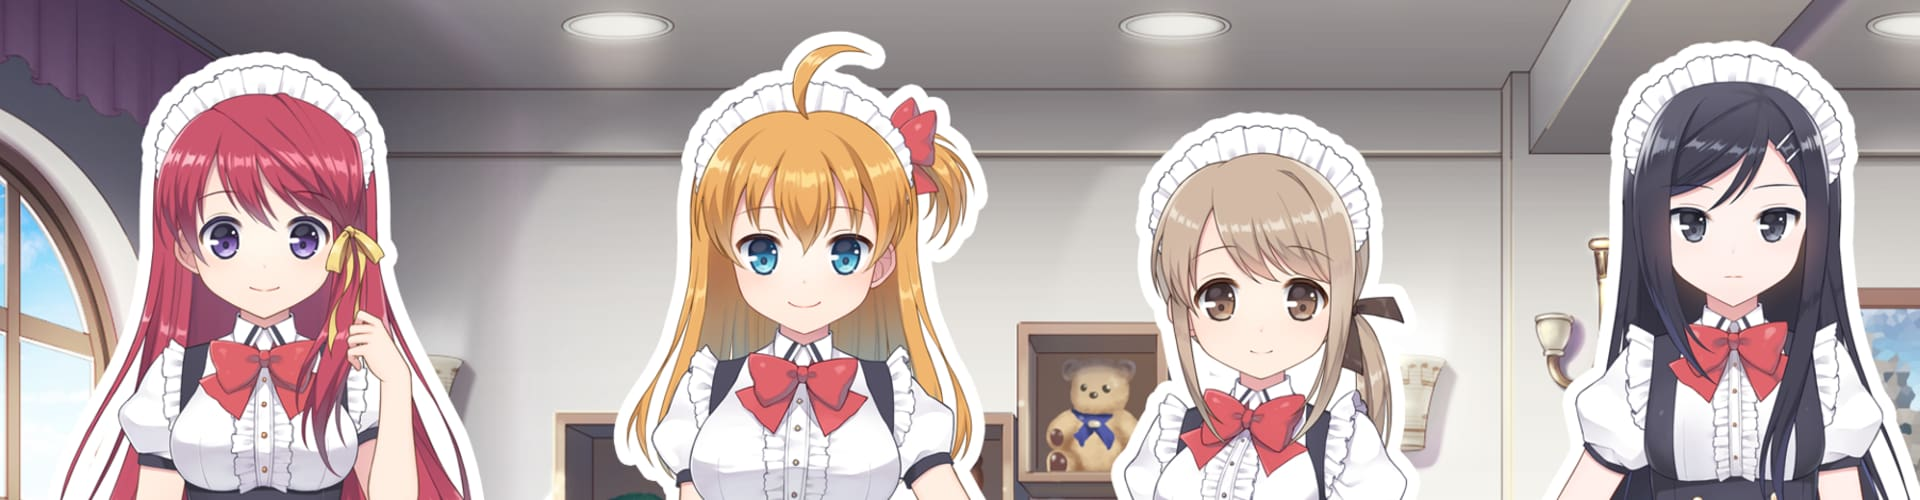 A game against the backdrop of a maid cafe currently under development